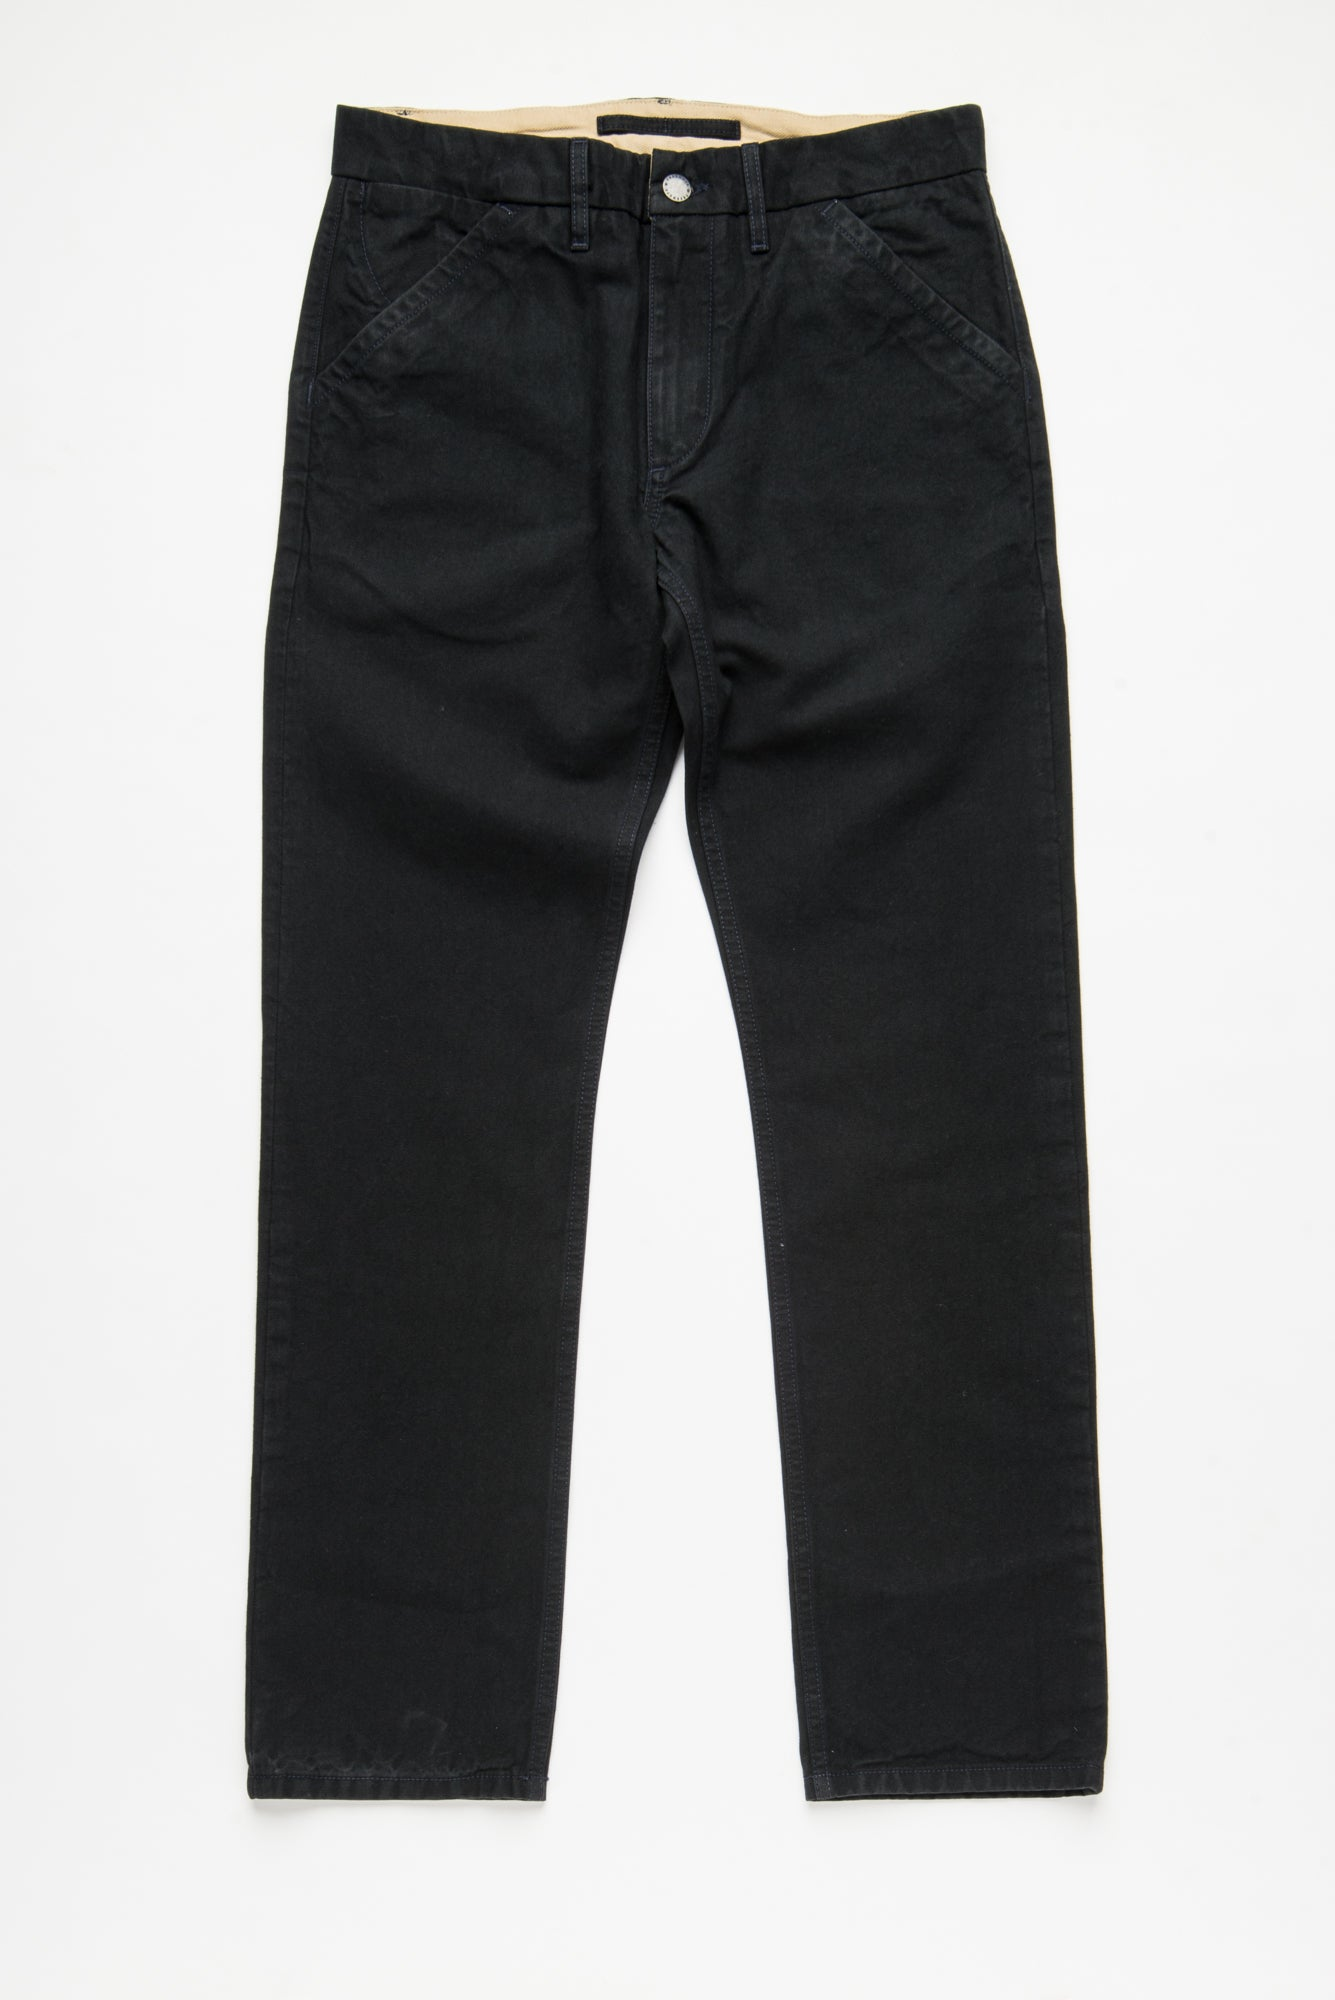 Workers Chino Slim Fit black front